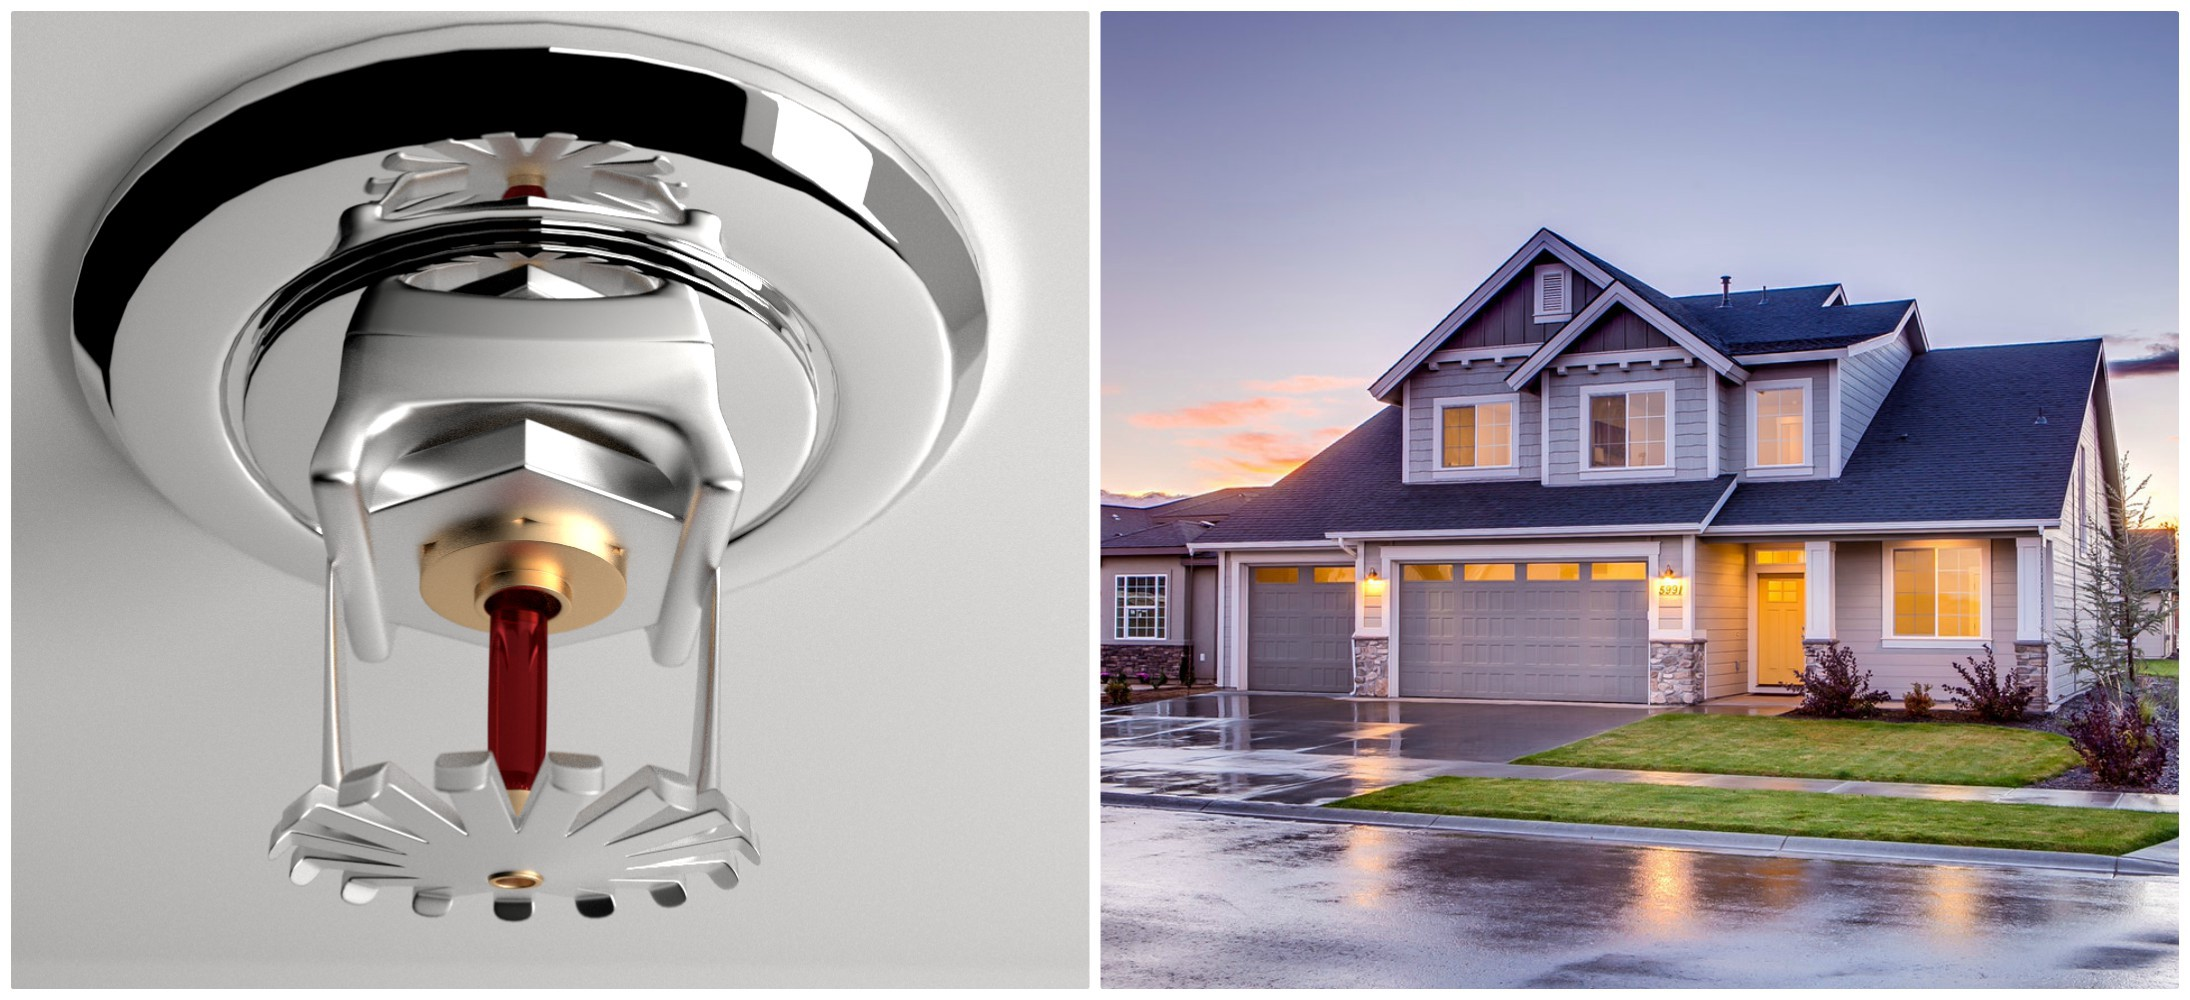 A Close Estimation Of The Cost Of A Home Fire Sprinkler System